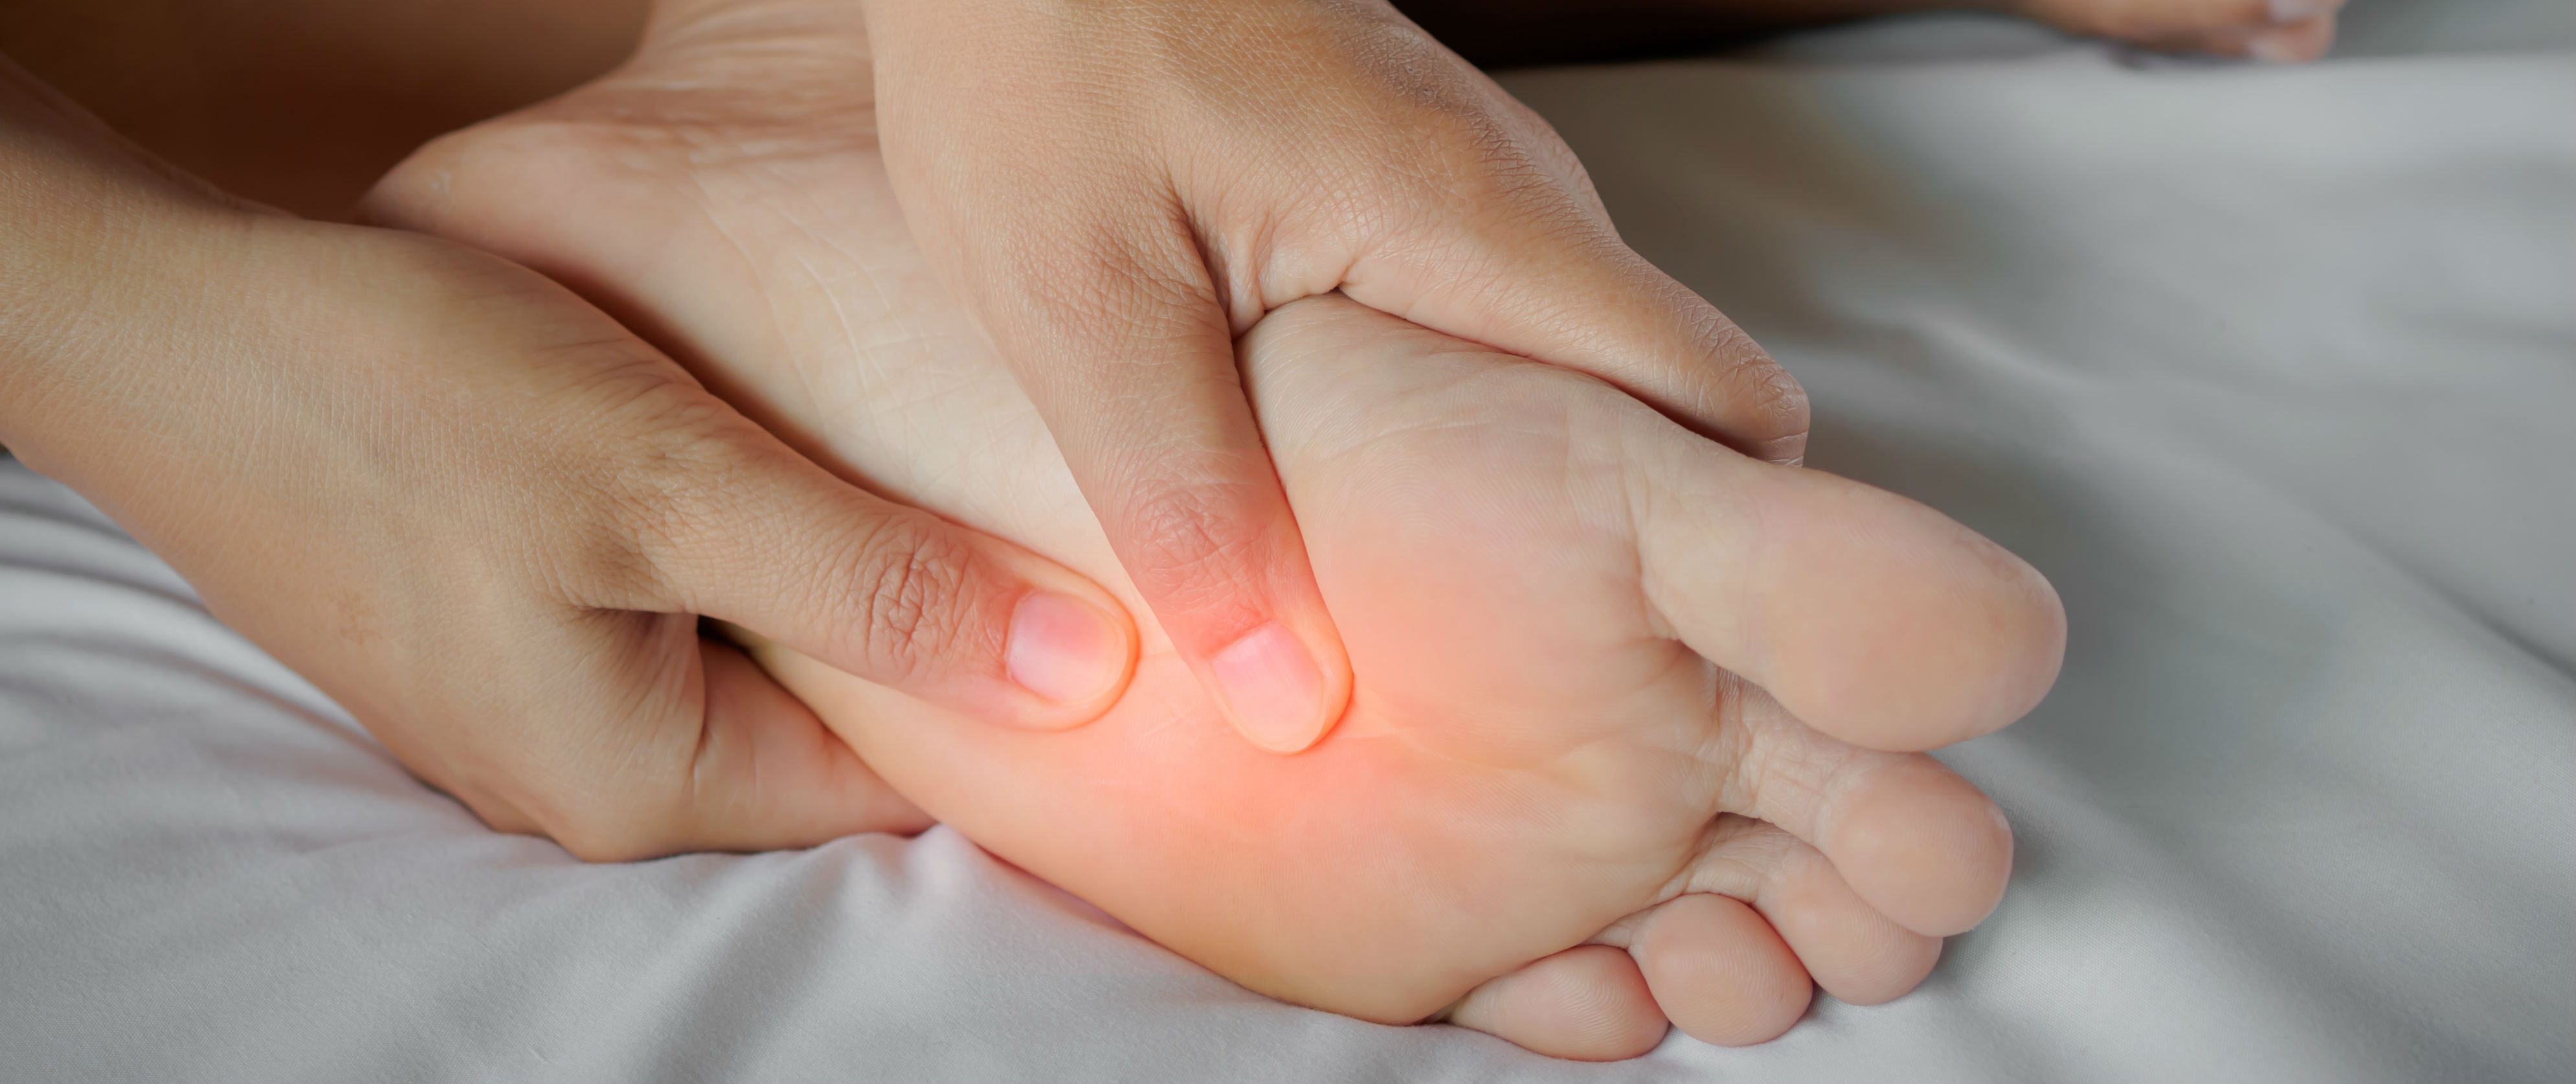 Foot Tingling Or Numbness It Could Be Neuropathy Carilion Clinic Living